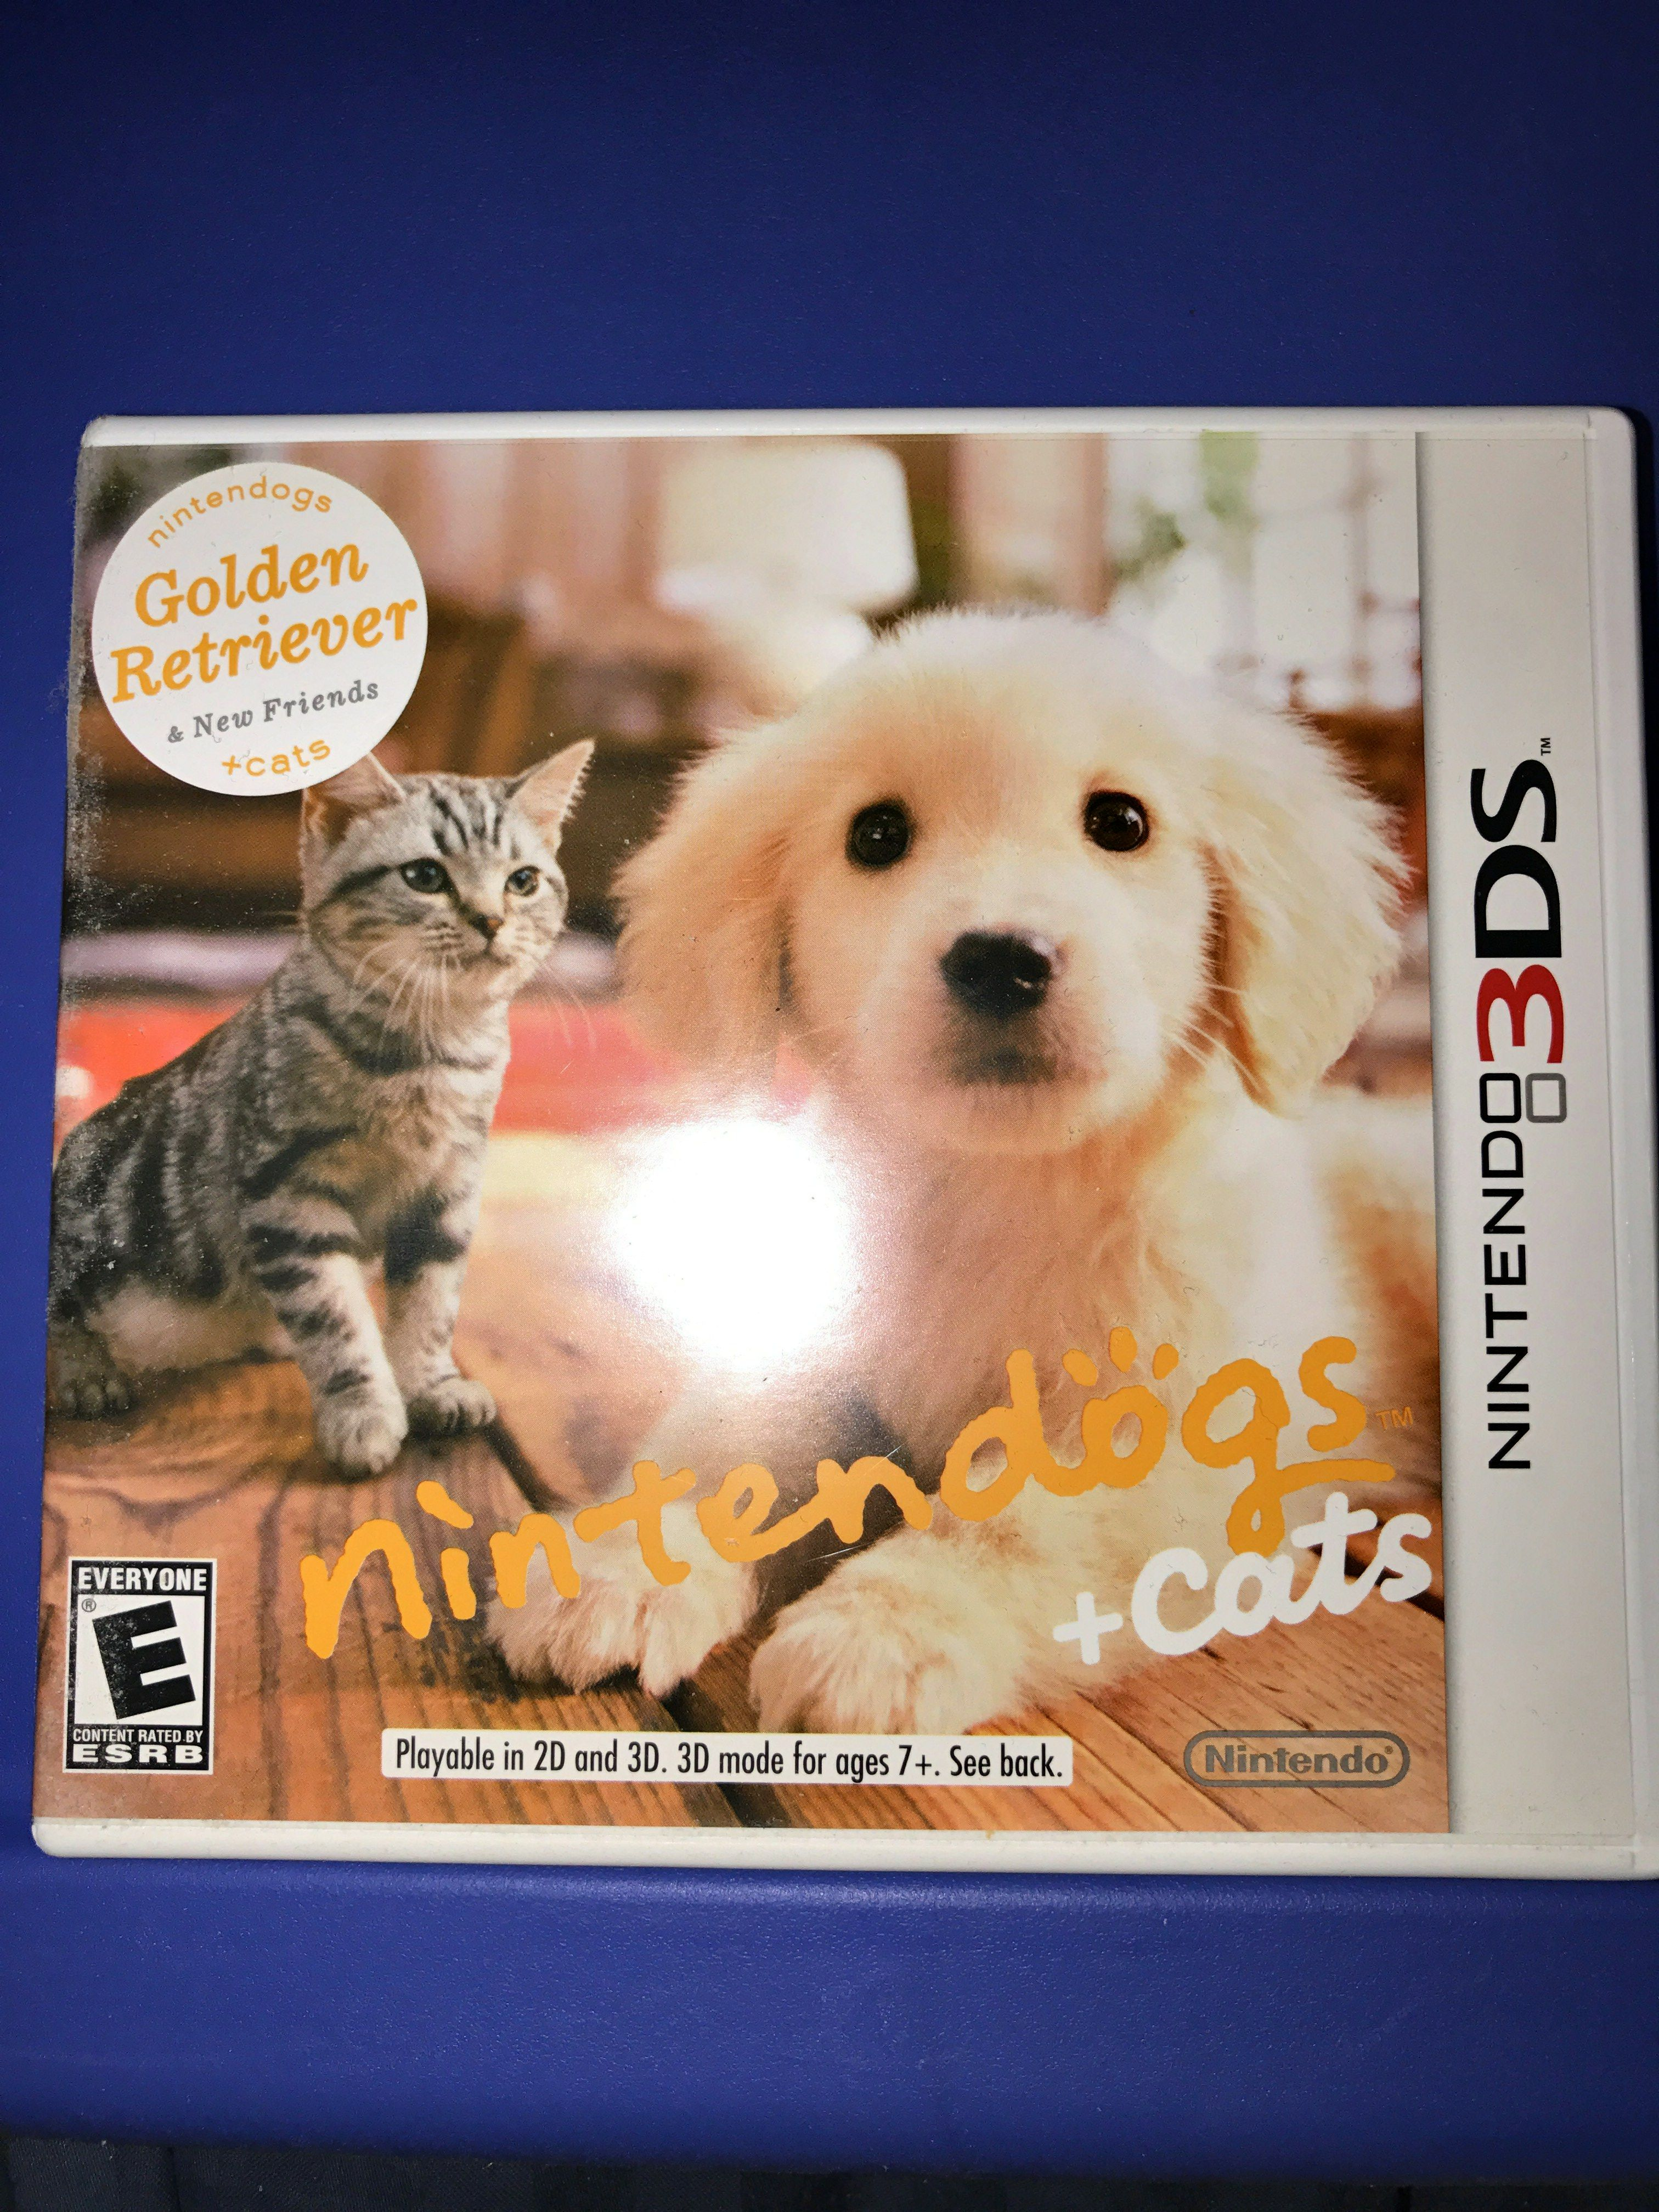 Nintendo 3ds Nintendogs Cats Golden Retriever New Friends